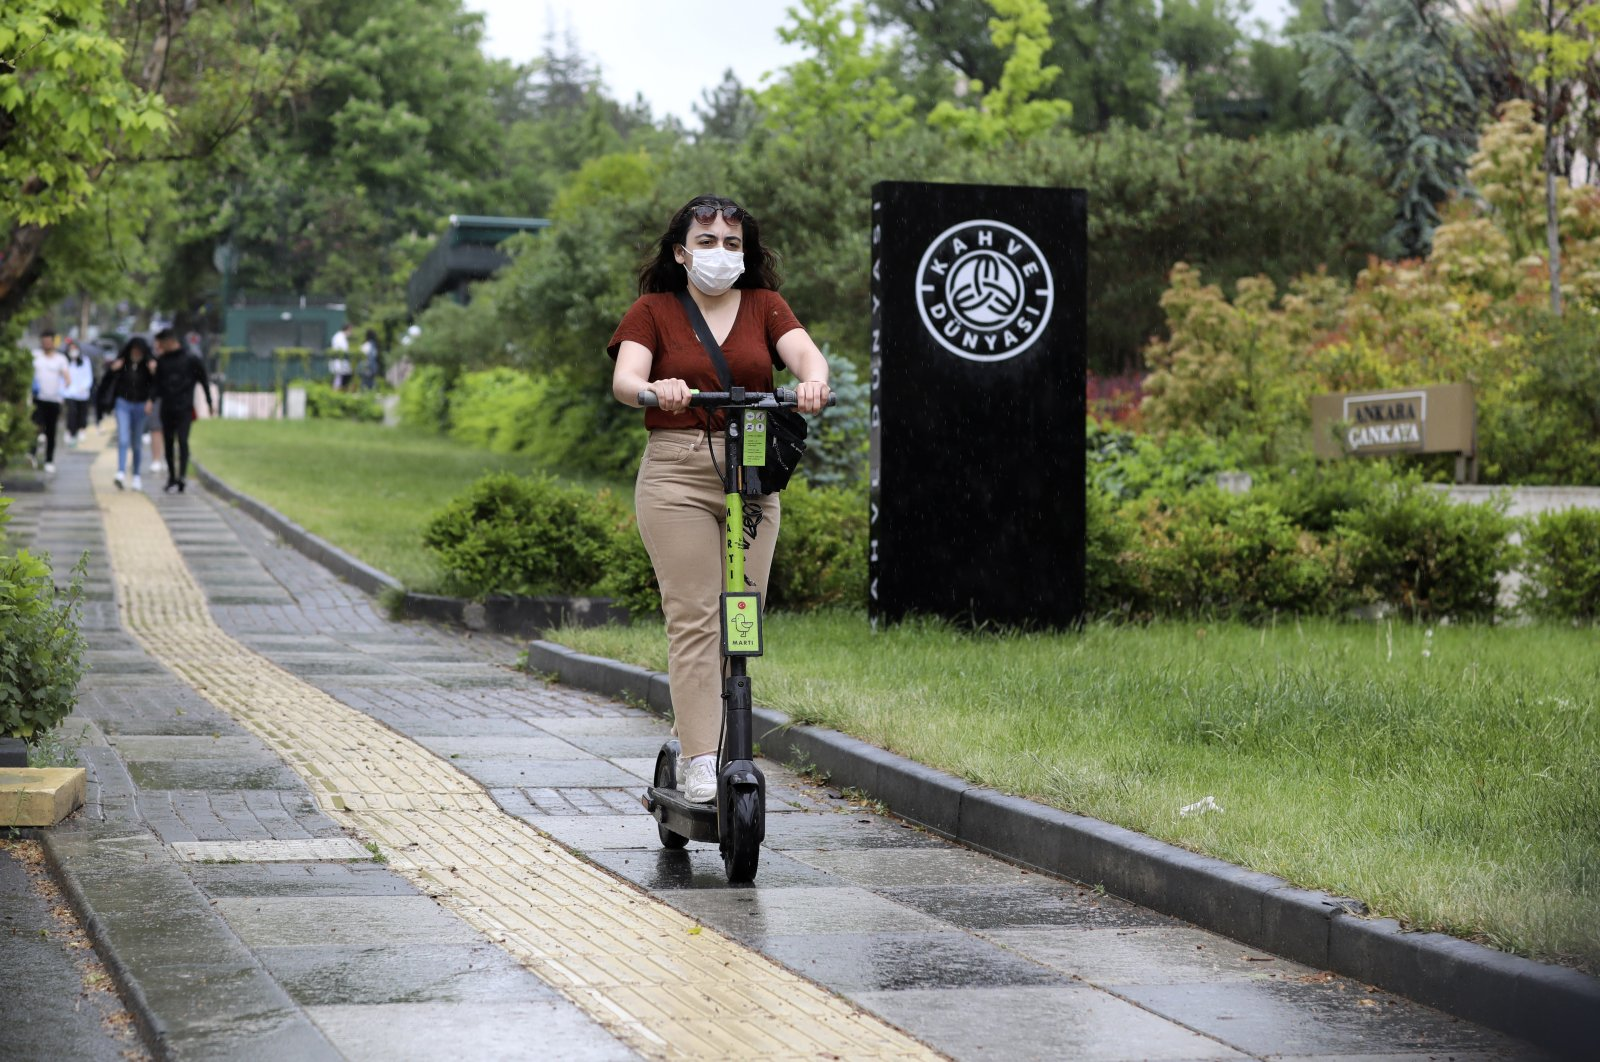 A woman wearing a face mask for protection against the new coronavirus, rides a scooter just hours before a four-day new curfew declared by the government in an attempt to control the spread of coronavirus, in Ankara, Turkey, Friday, May 22, 2020. (AP Photo)